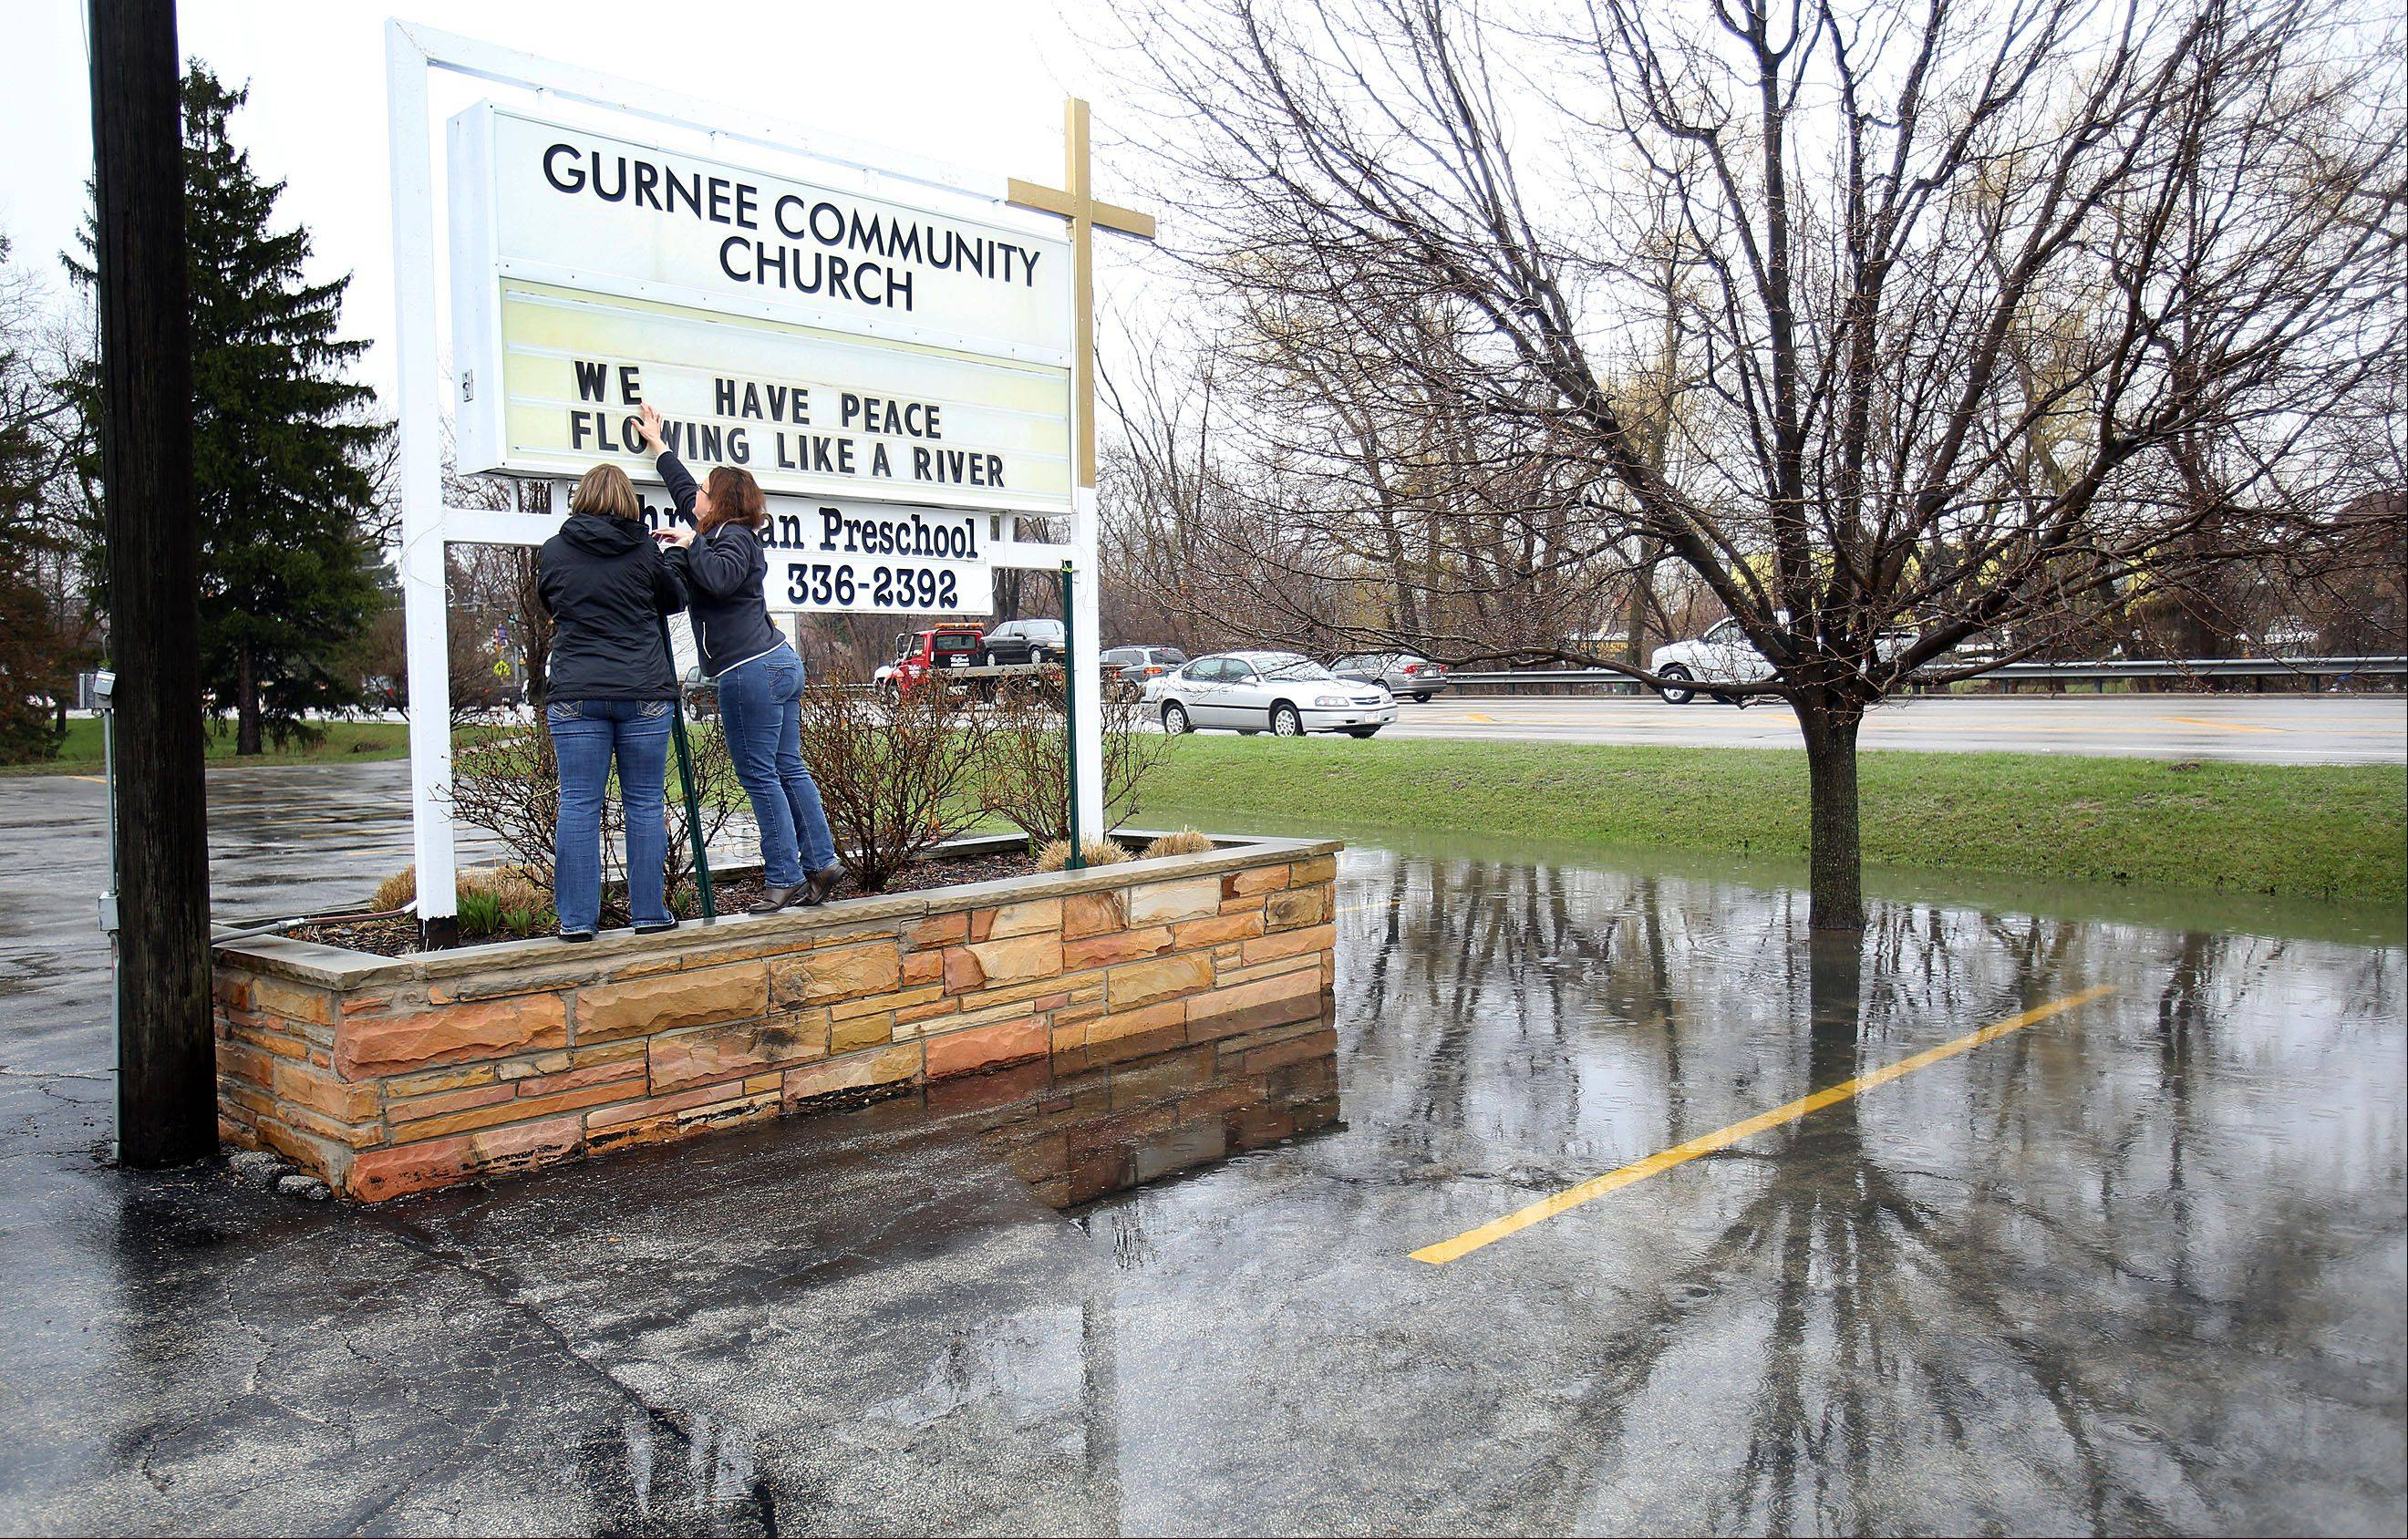 "Gurnee Community Church employees Stacey Rowan, left, and Shawn Robards make a sign that says ""We have peace flowing like a river"" as they prepare for flooding in Gurnee Thursday morning."